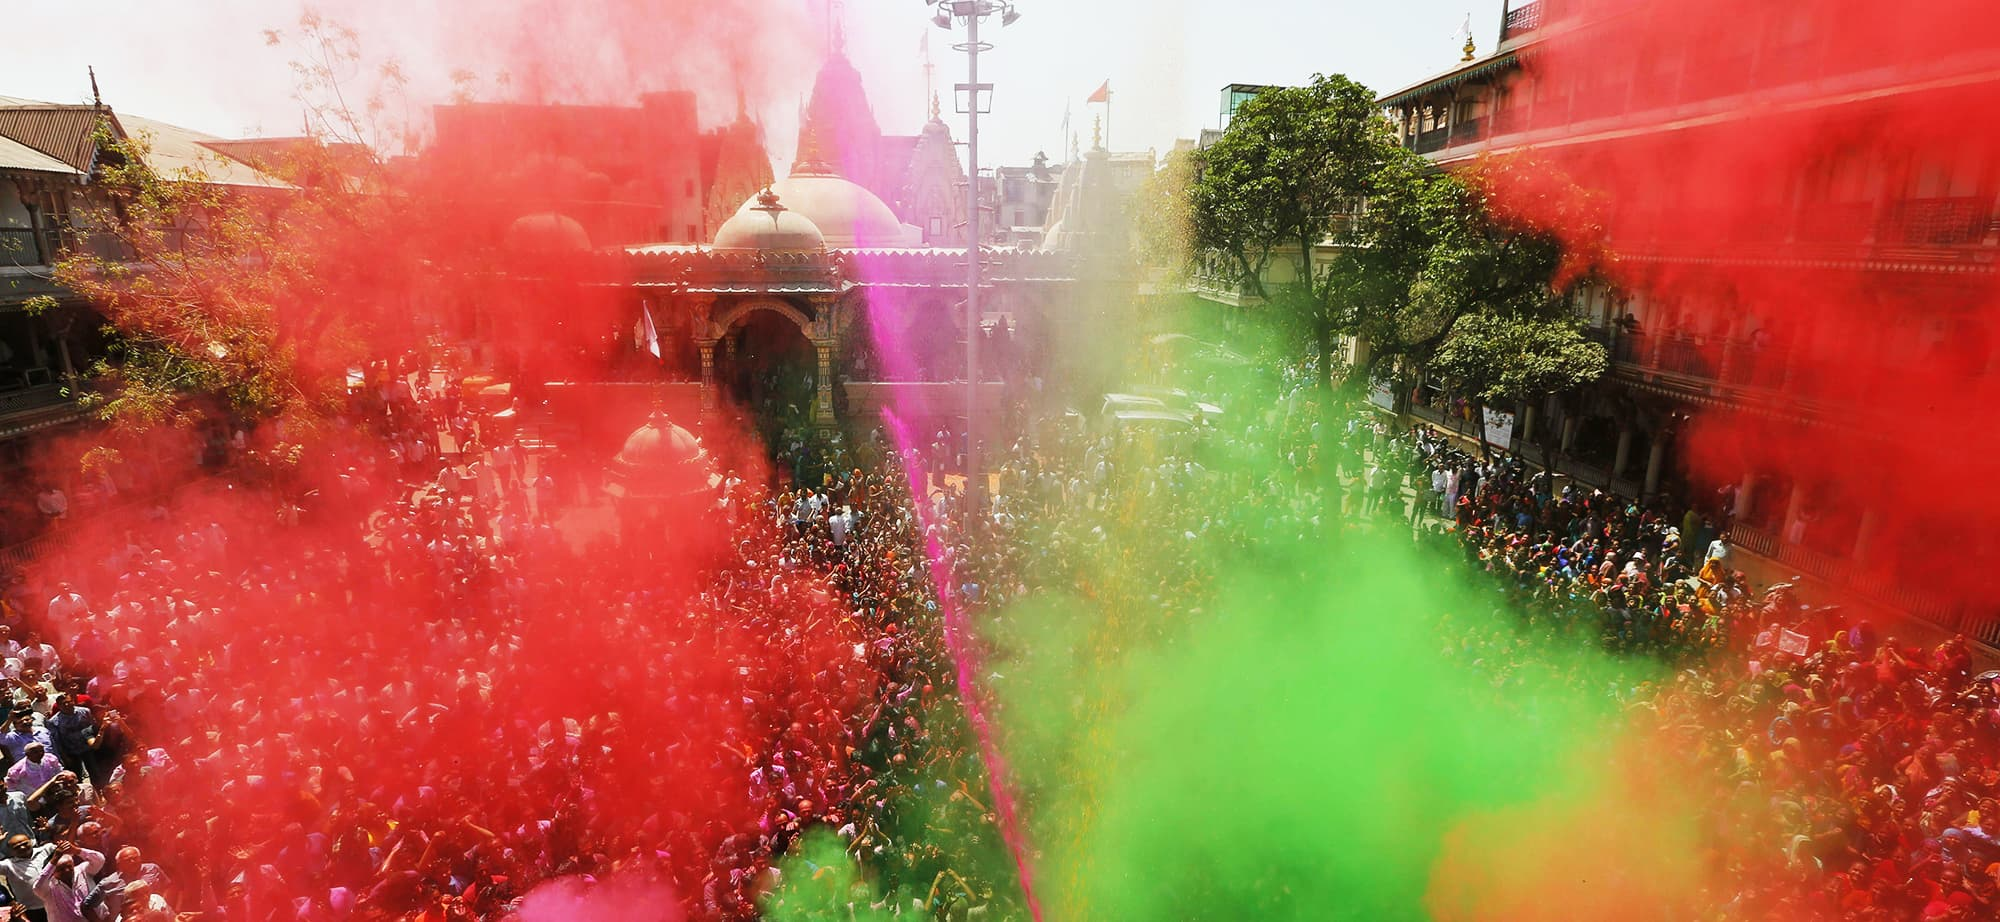 Indian Hindu devotees cheer as colored powder and water is sprayed on them by a Hindu priest during celebrations marking Holi at the Swaminarayan temple in Ahmadabad, India, Wednesday, March 20, 2019. Holi also marks the advent of Spring season. (AP Photo/Ajit Solanki) — Copyright 2019 The Associated Press. All rights reserved